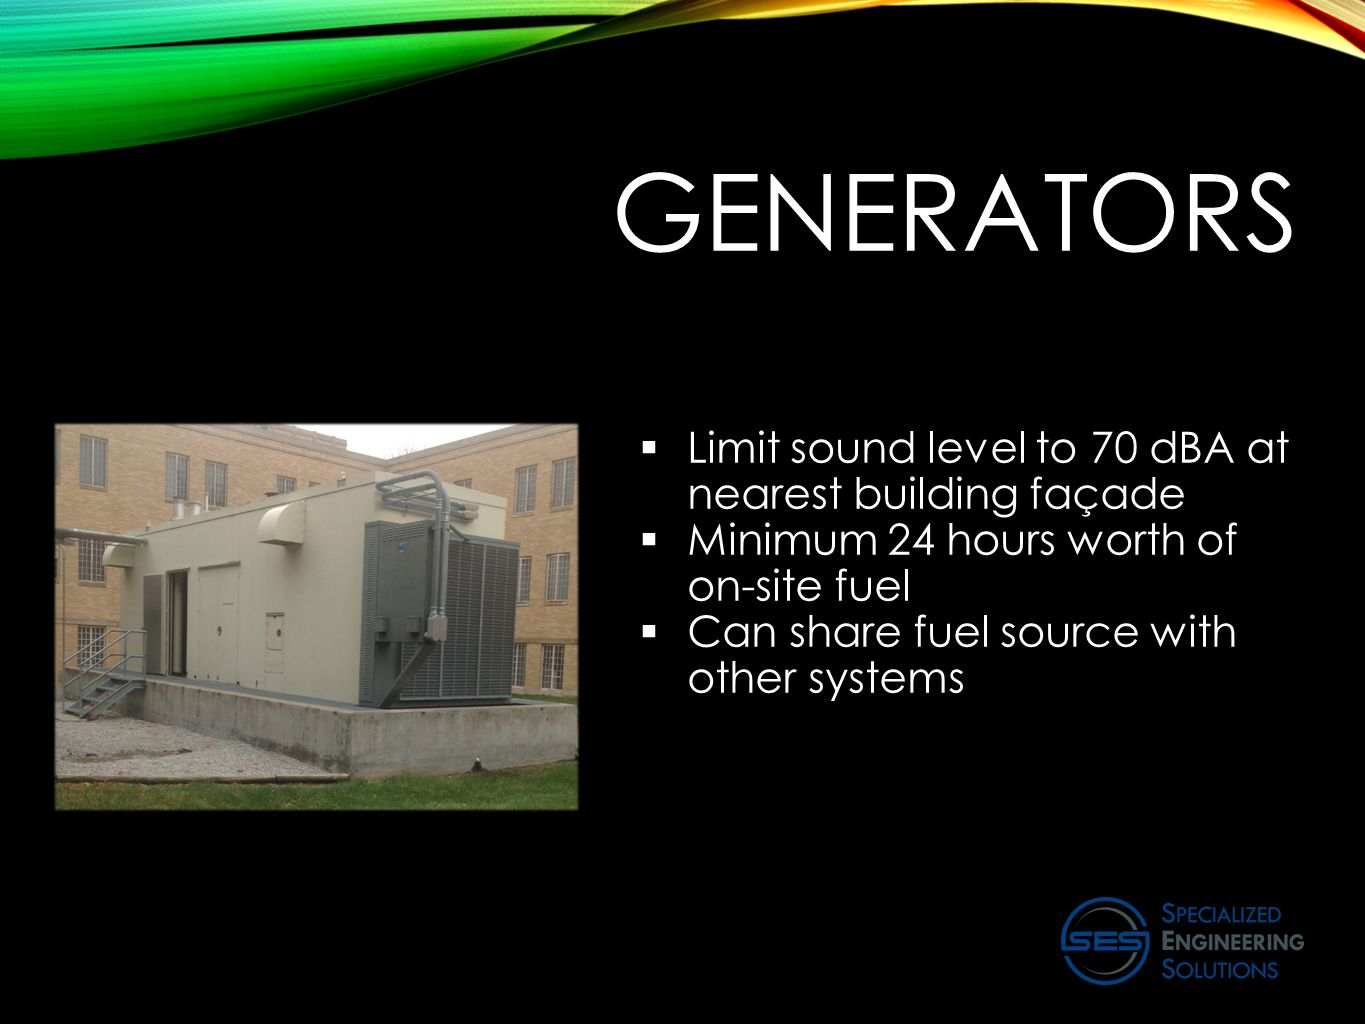 GENERATORS  Limit sound level to 70 dBA at nearest building façade  Minimum 24 hours worth of on-site fuel  Can share fuel source with other system